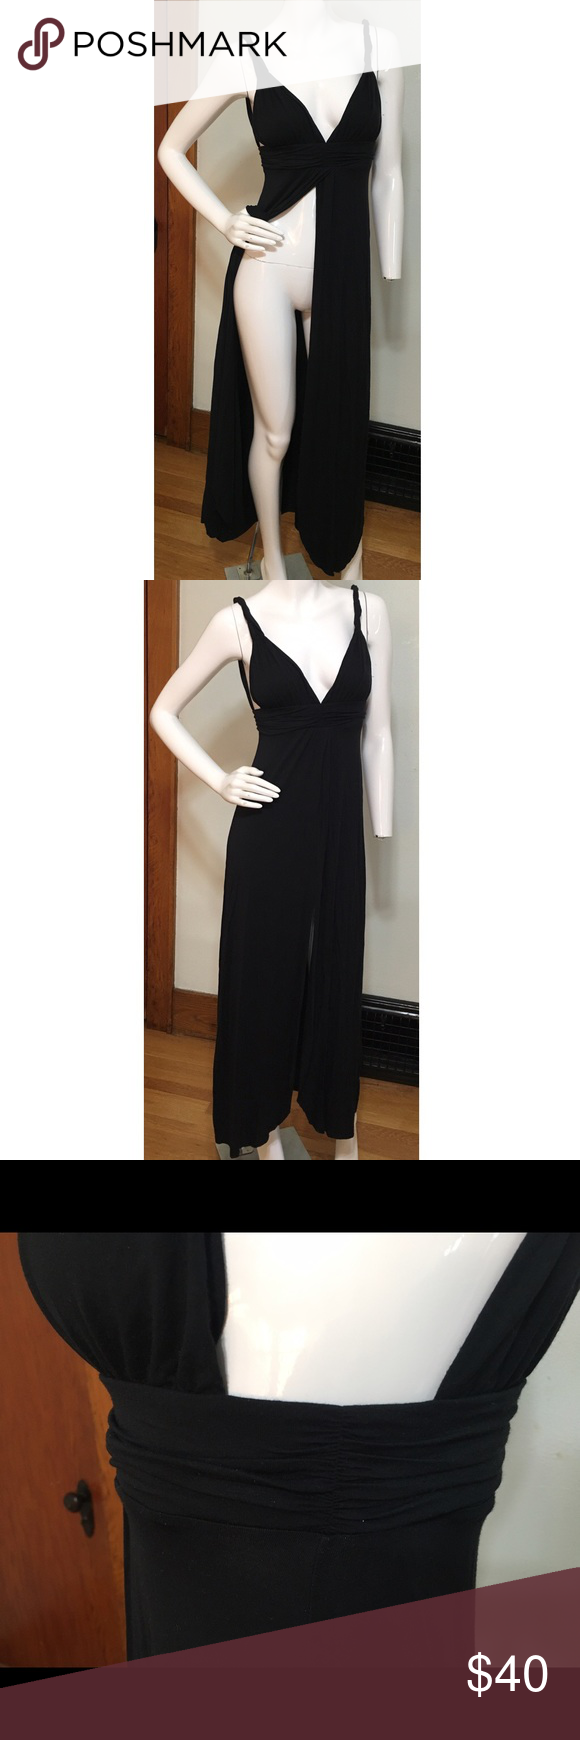 Victoria's Secret swim coverup Soft, black swim coverup. The length is long. Please feel free to ask questions! This was worn on one occasion. Victoria's Secret Swim Coverups